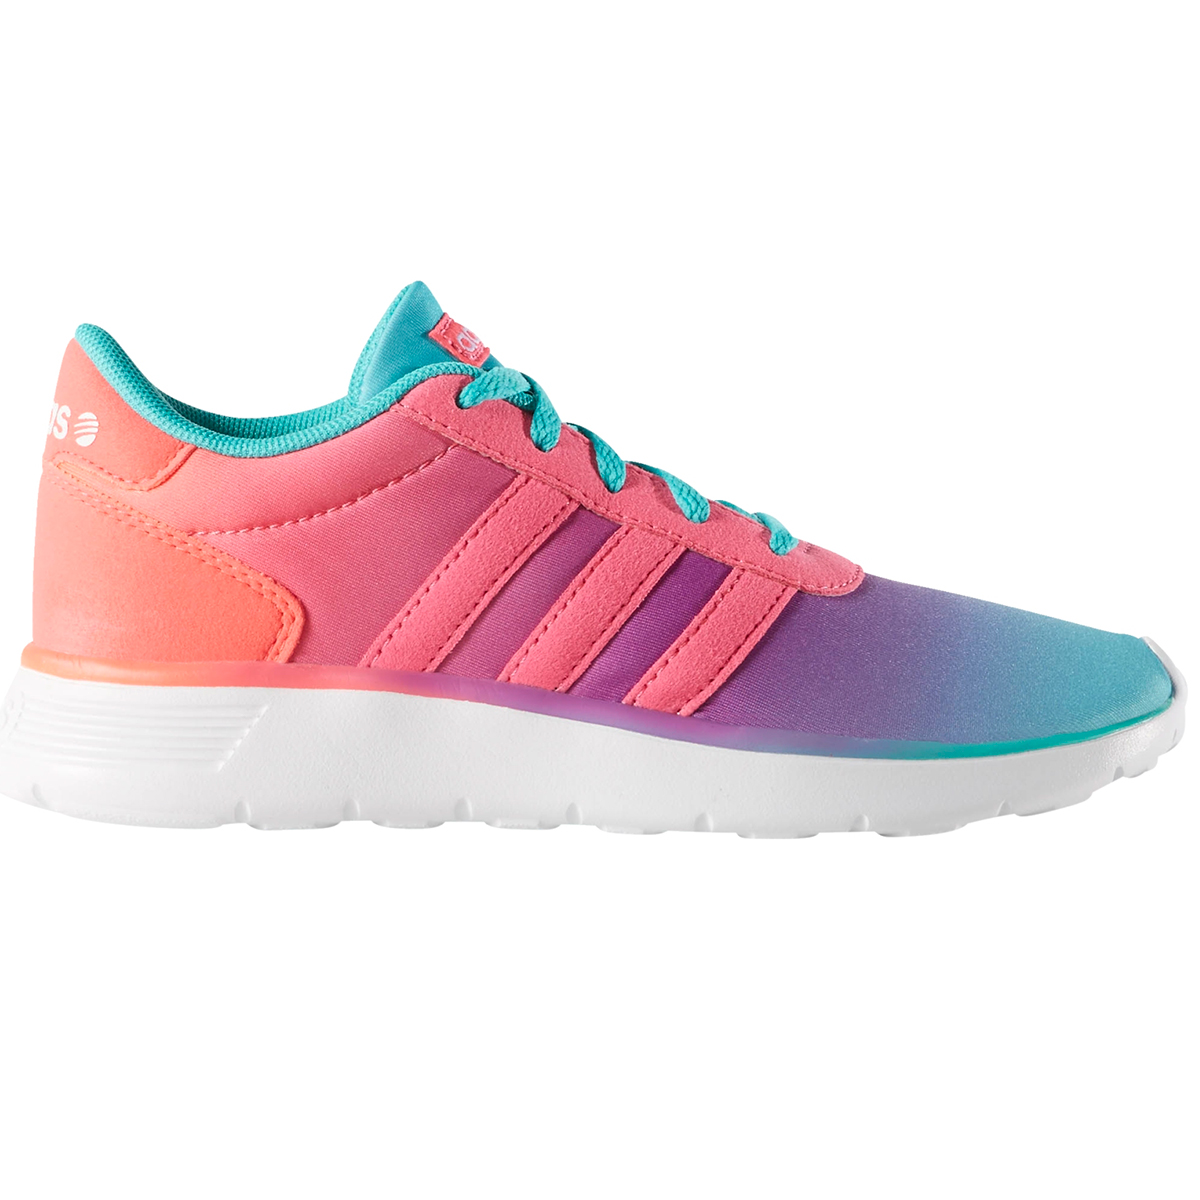 Adidas Neo Lite Racer Running Shoes Woman Pink